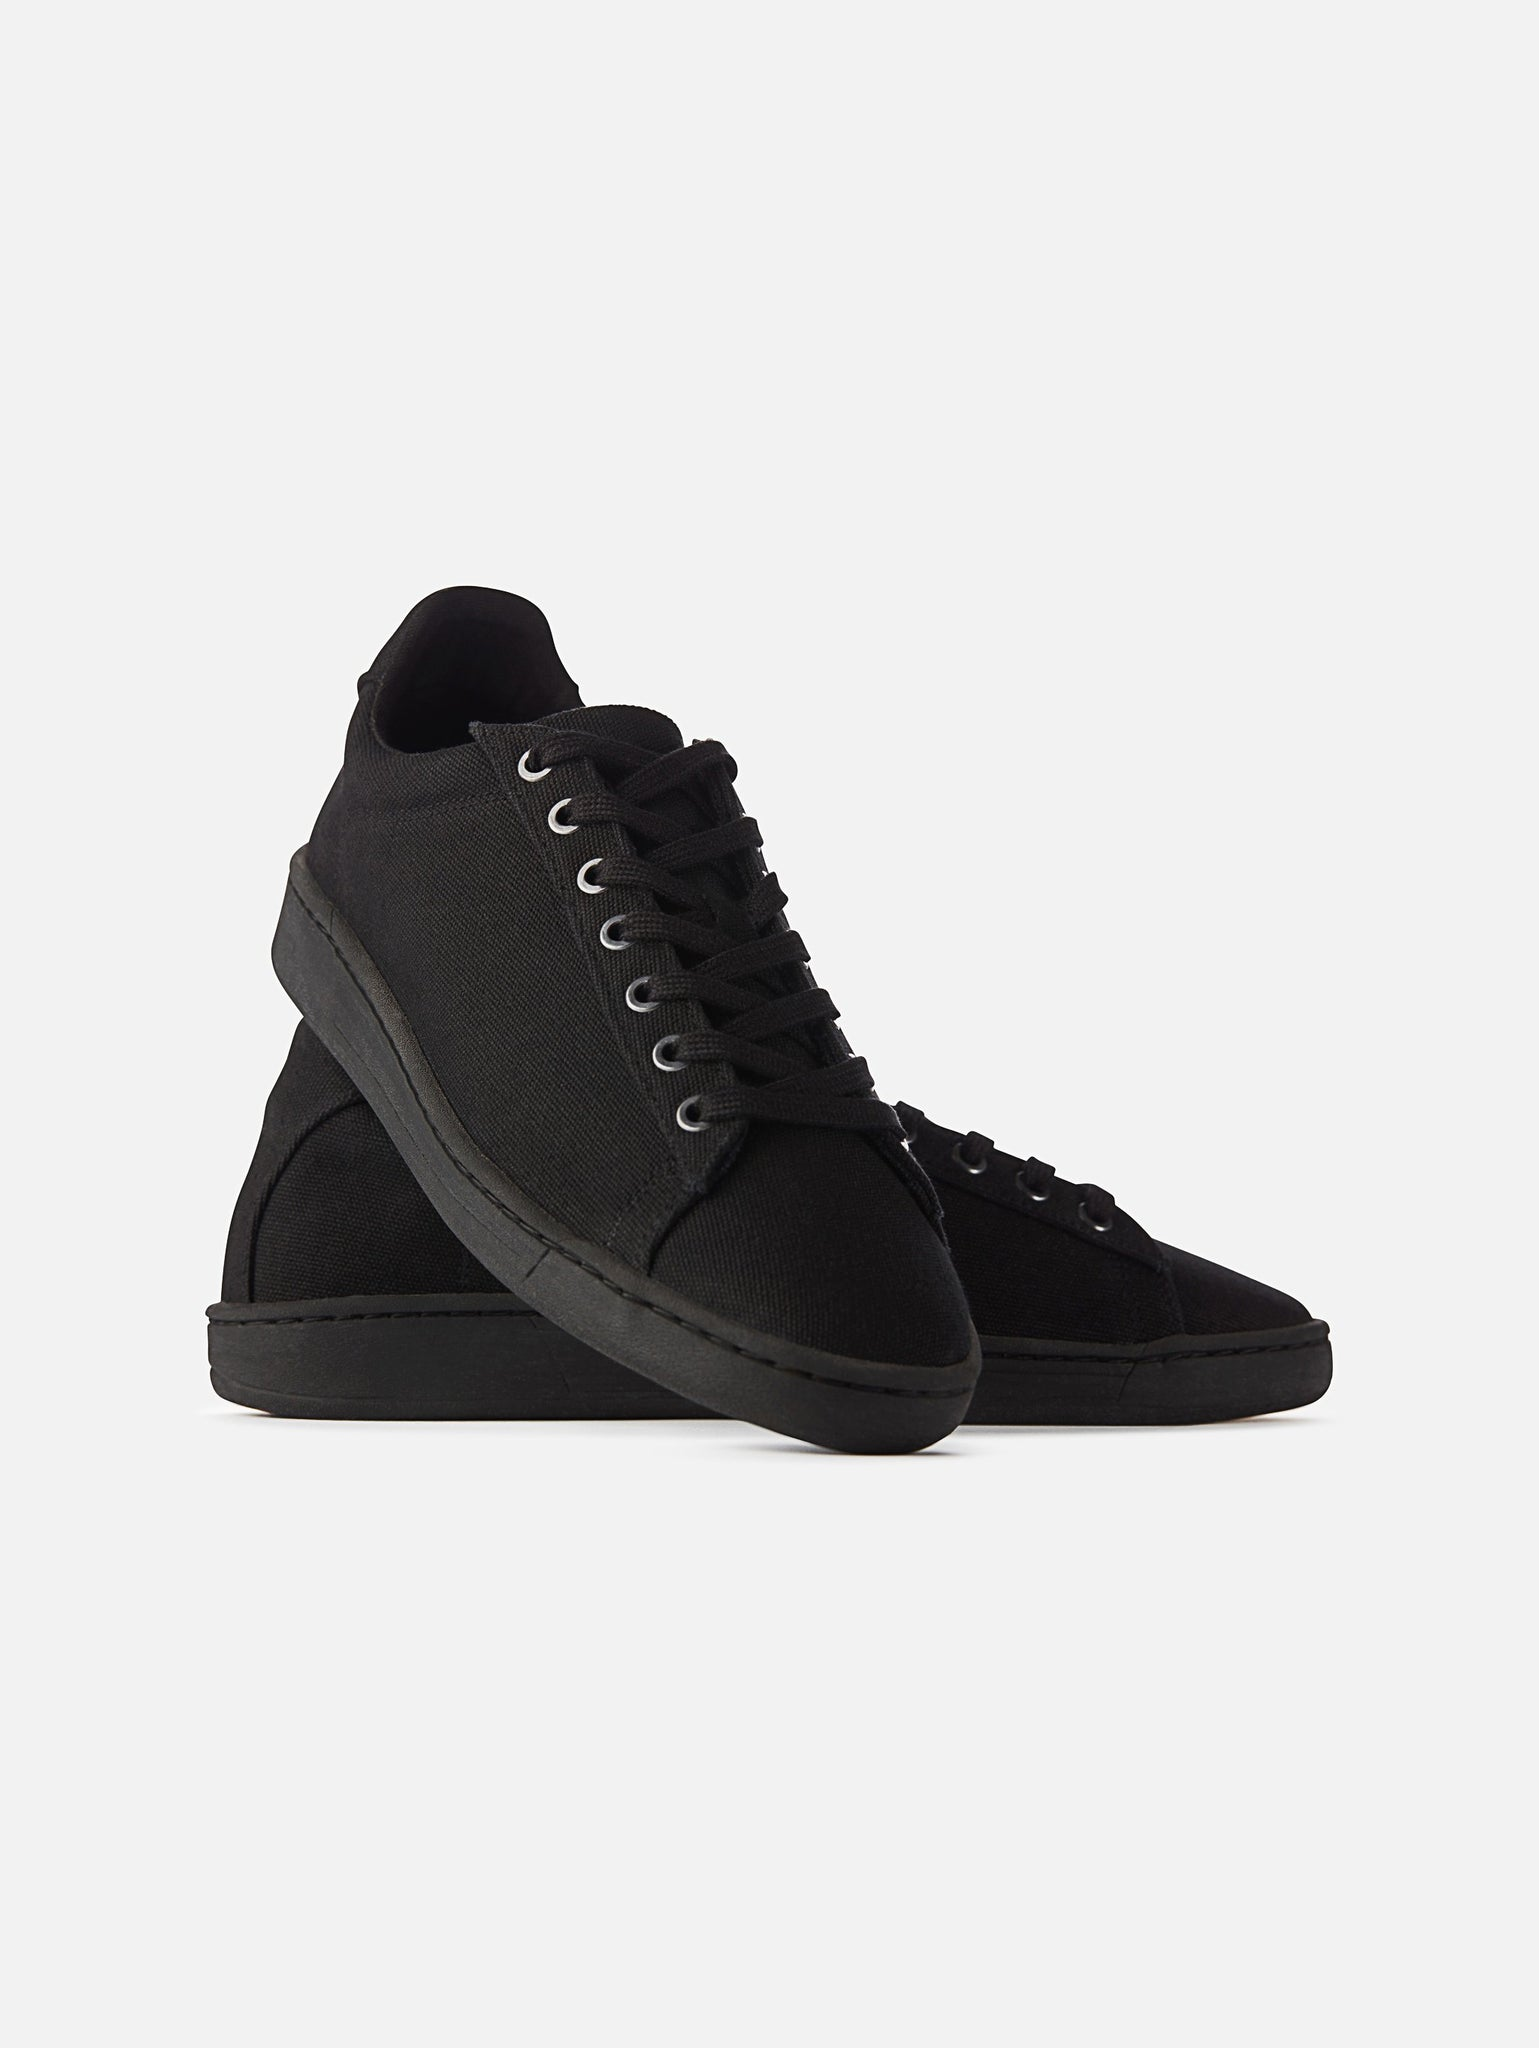 Hope - Vegan All Black Canvas Shoeproduct_vendor#product_type